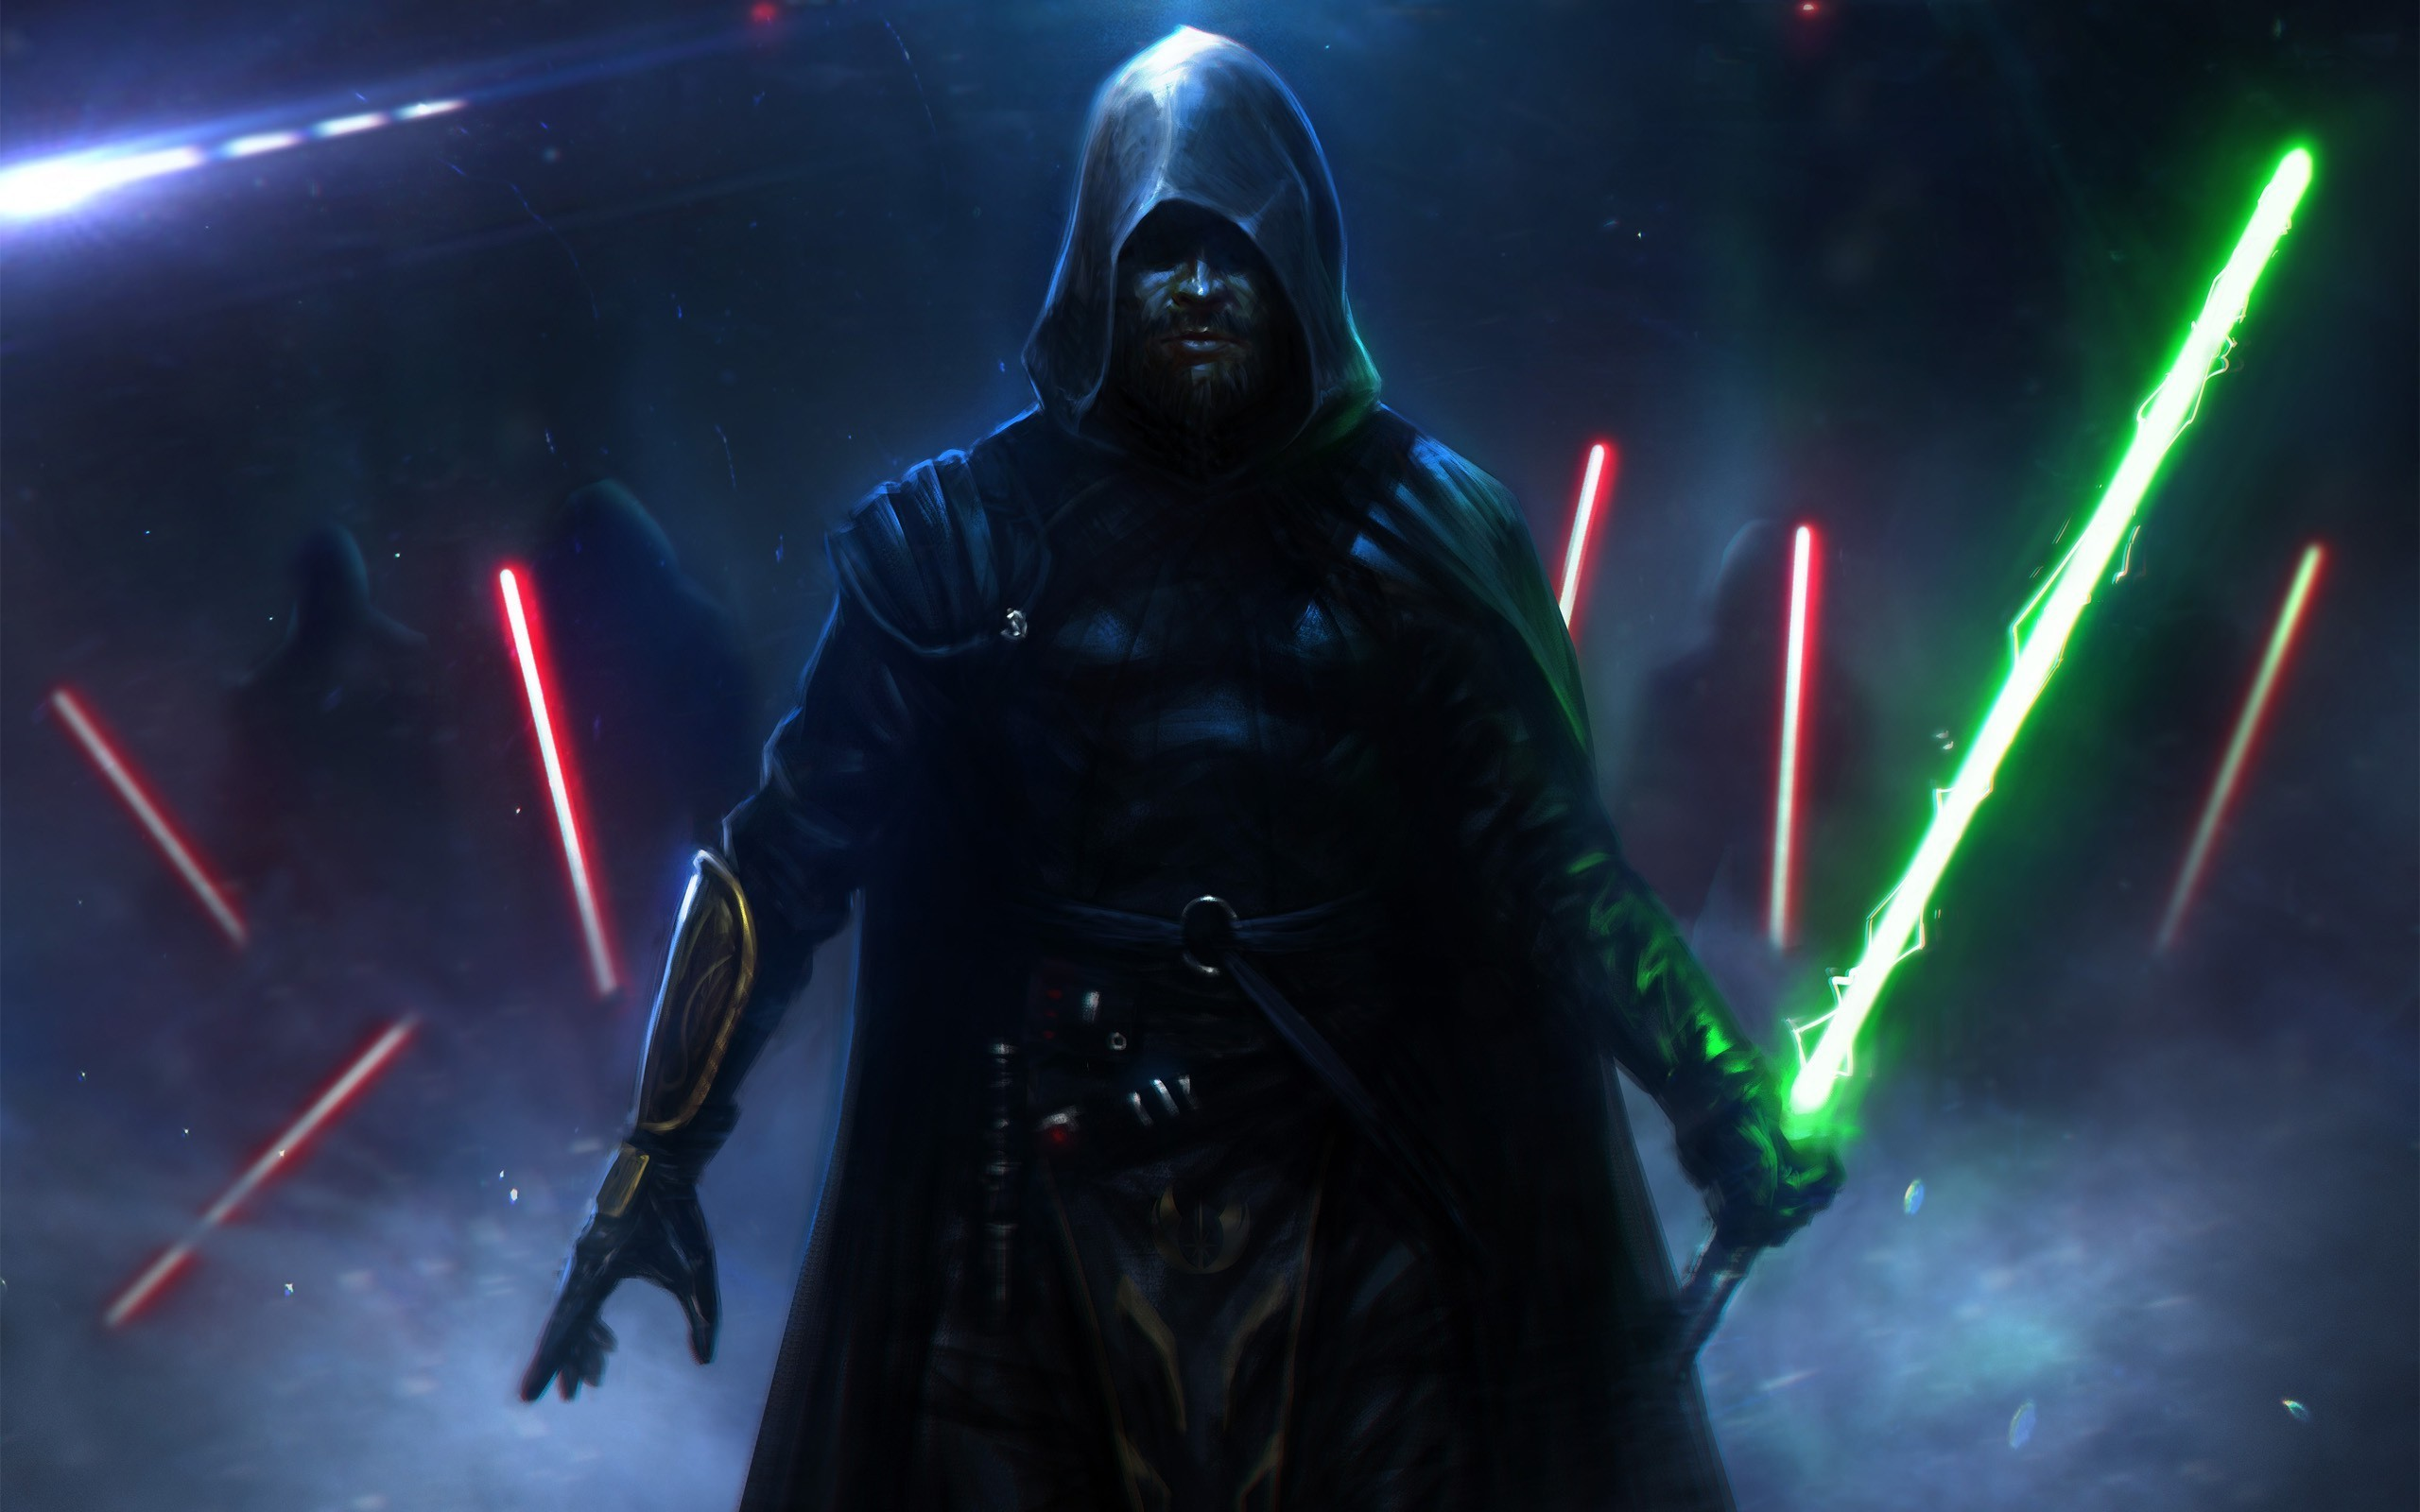 Star Wars Jedi HD Wallpapers HD Wallpapers 1080p 2560x1600